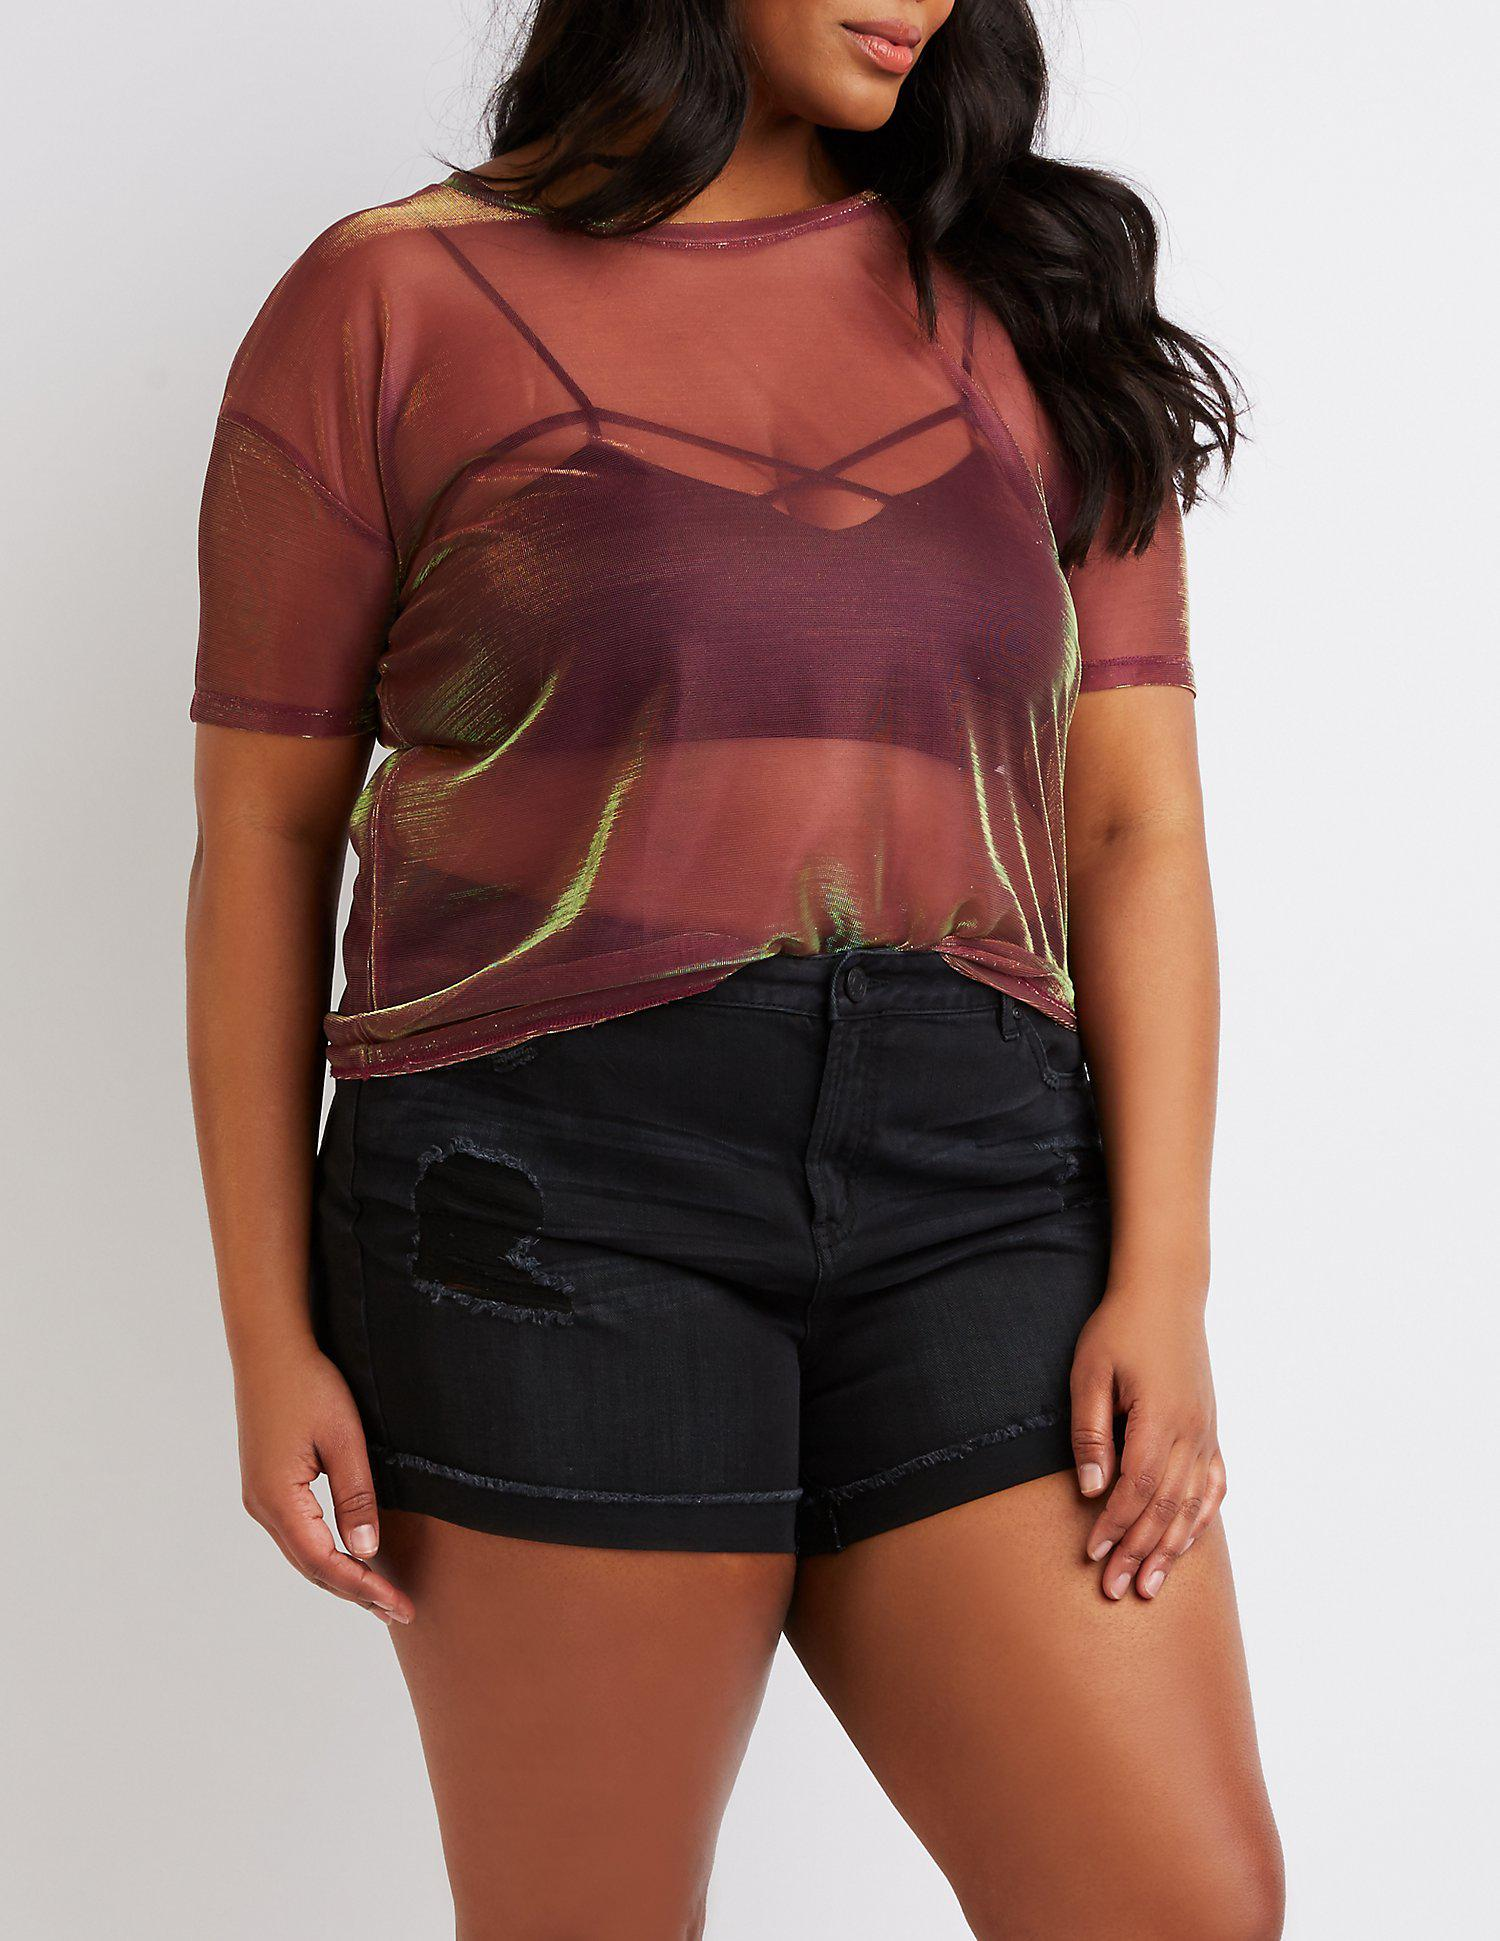 8f898e5718a50 Lyst - Charlotte russe Plus Size Iridescent Mesh Tee - Save 27%